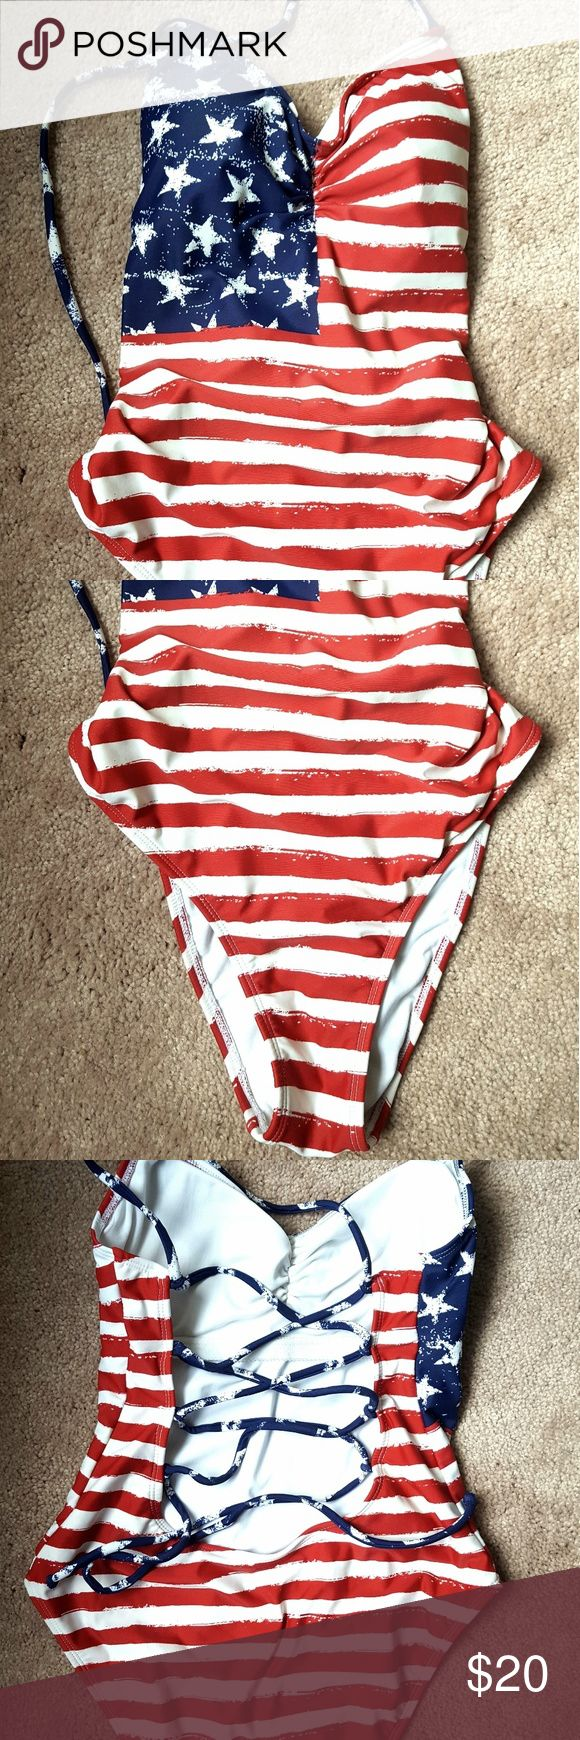 Great condition cute American flag swim suit Worn once in ocean so white stripes have slight yellowing. Otherwise in like new condition. Washed in tide and oxy. Size medium. Xhilaration Swim One Pieces